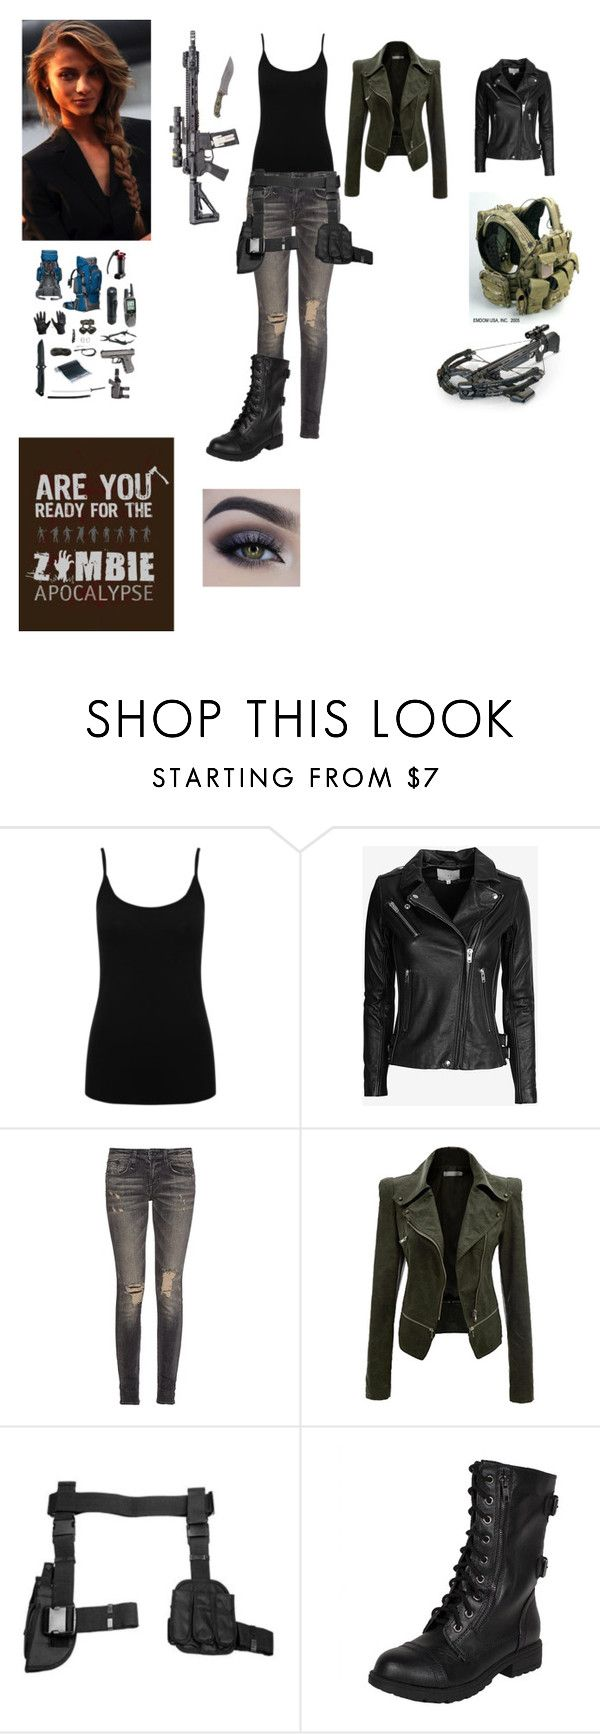 """Zombie Apocalypse Outfit for Women"" by aliciakreb ❤ liked on Polyvore featuring M&Co, IRO and R13"